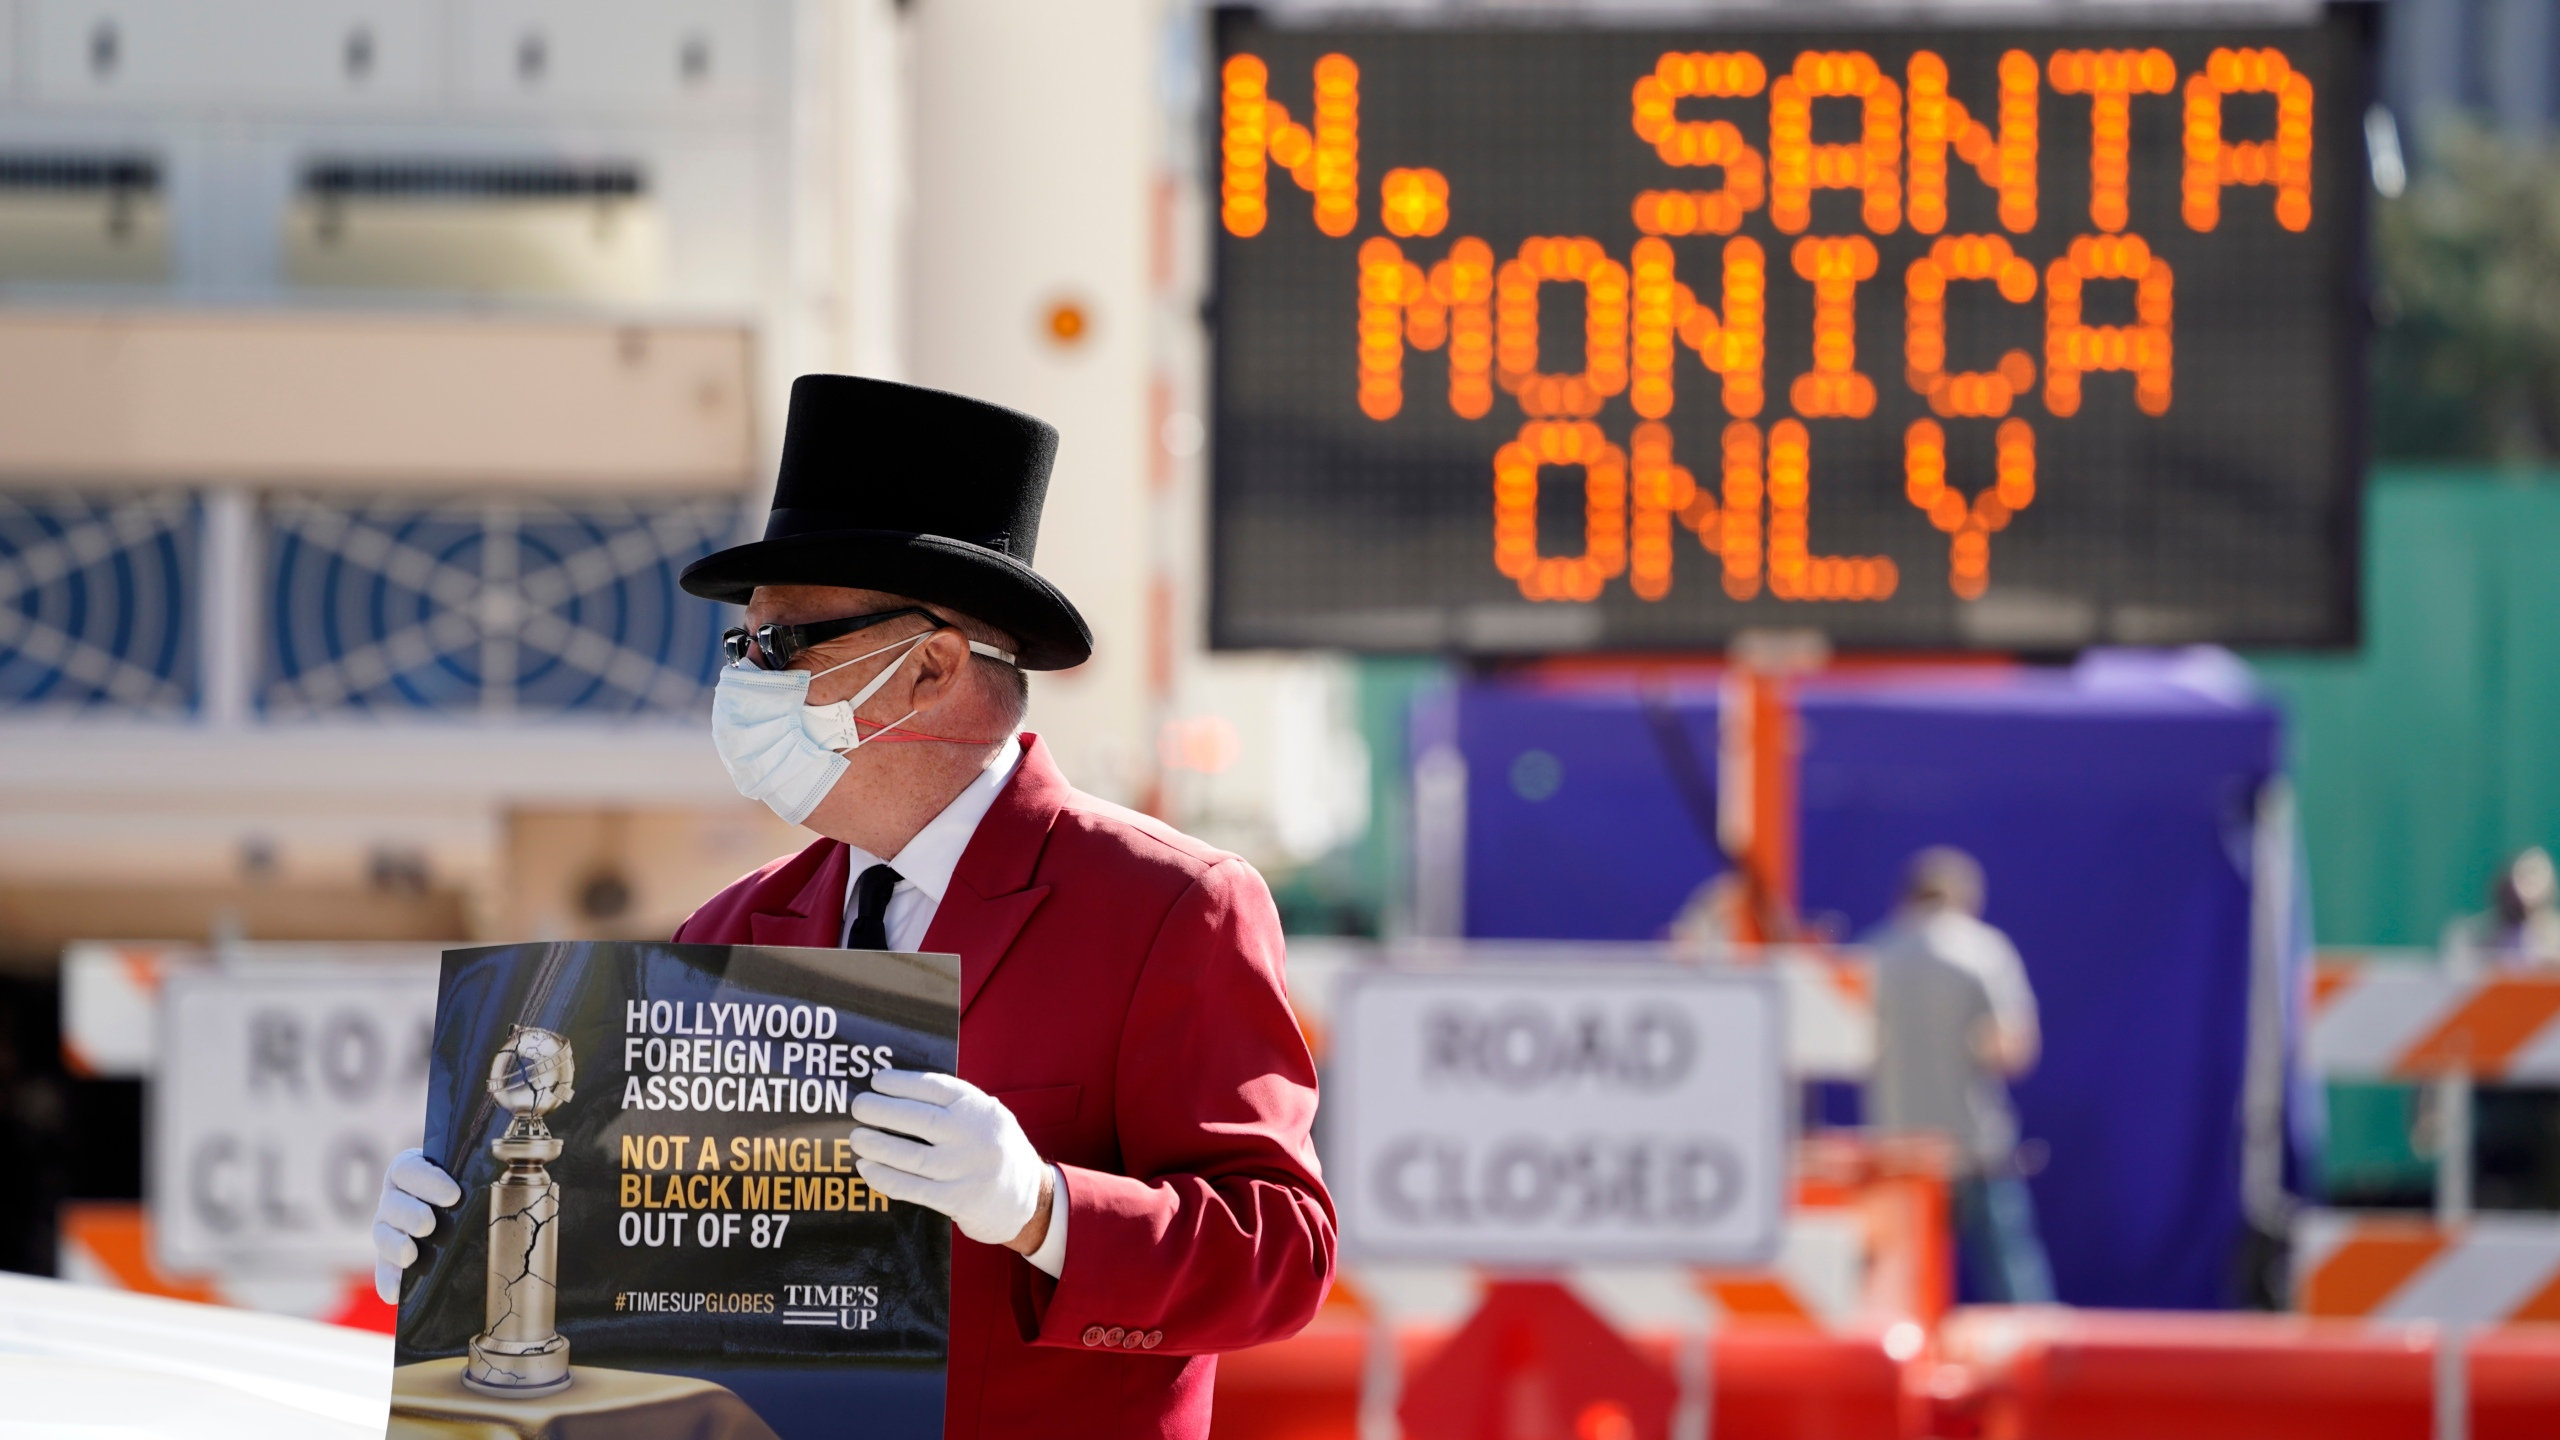 Gregg Donovan demonstrates with a sign protesting the lack of Black members in the Hollywood Foreign Press Association, outside a road closure near the 78th Golden Globe Awards at the Beverly Hilton, Sunday, Feb. 28, 2021, in Beverly Hills, Calif. (AP Photo/Chris Pizzello)